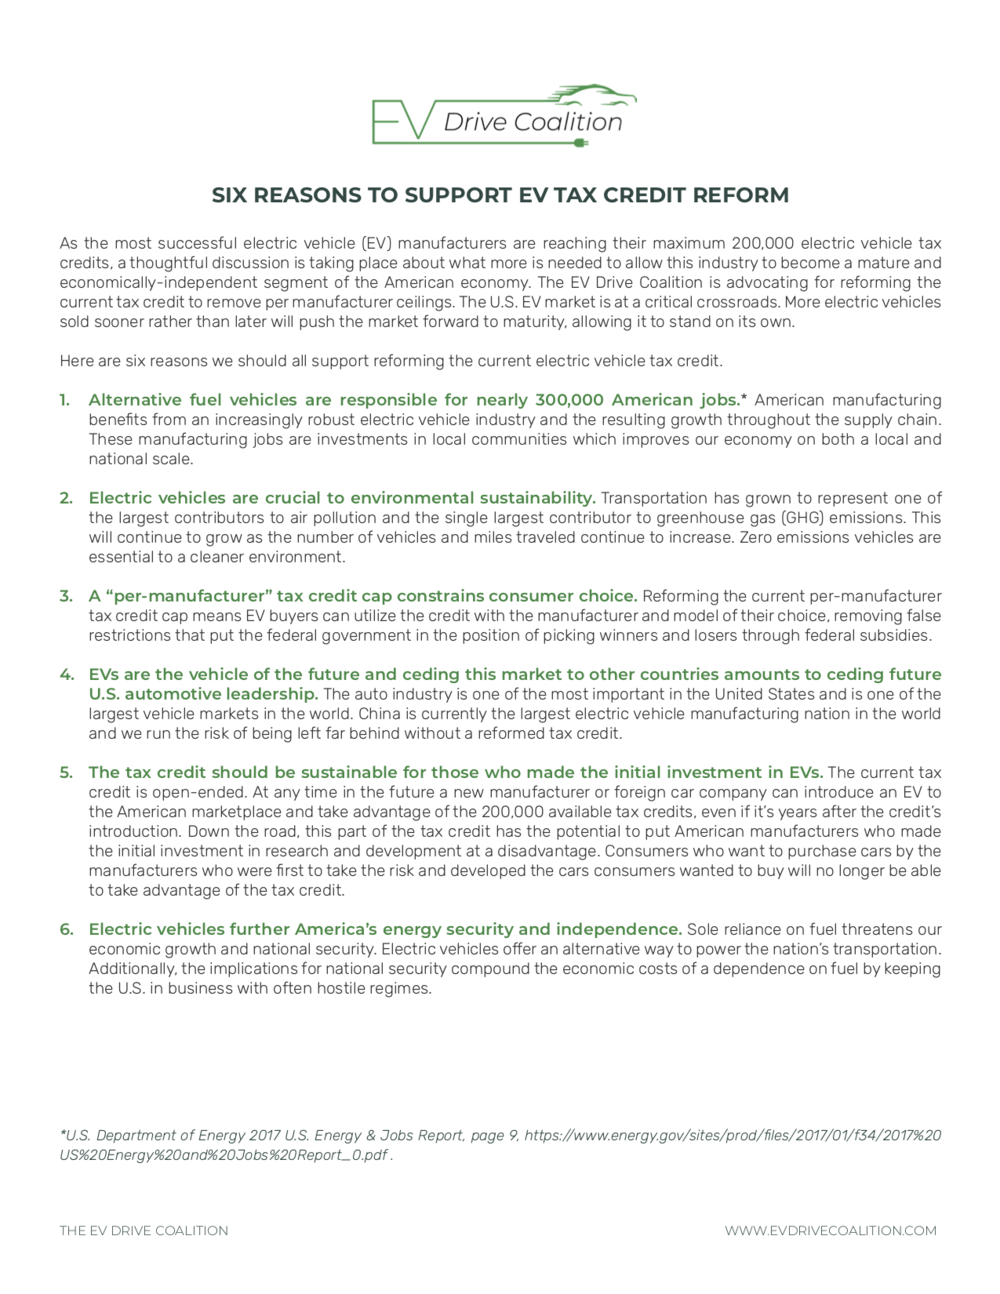 Six Reasons to Support EV Tax Credit Reform Final v2.png